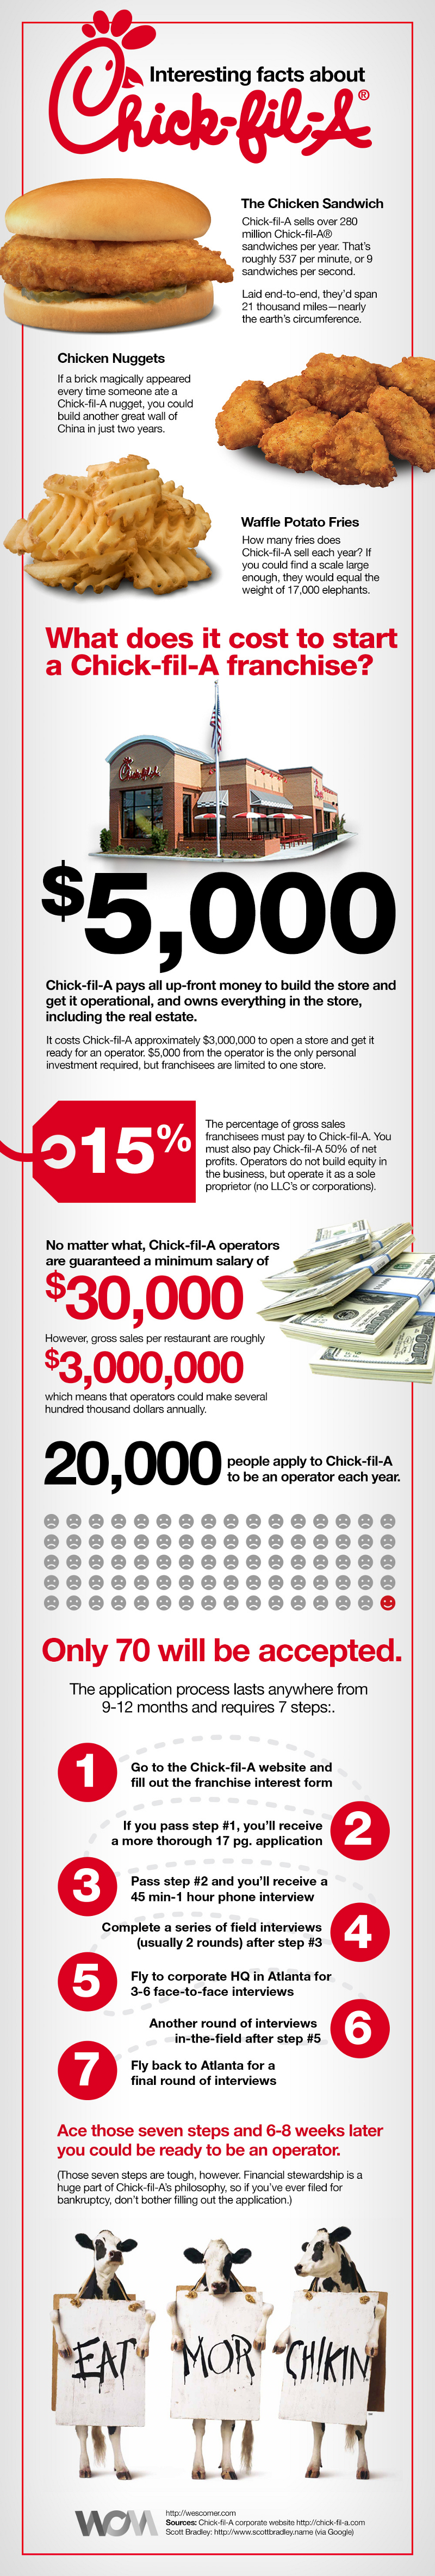 Chick Fil A Facts